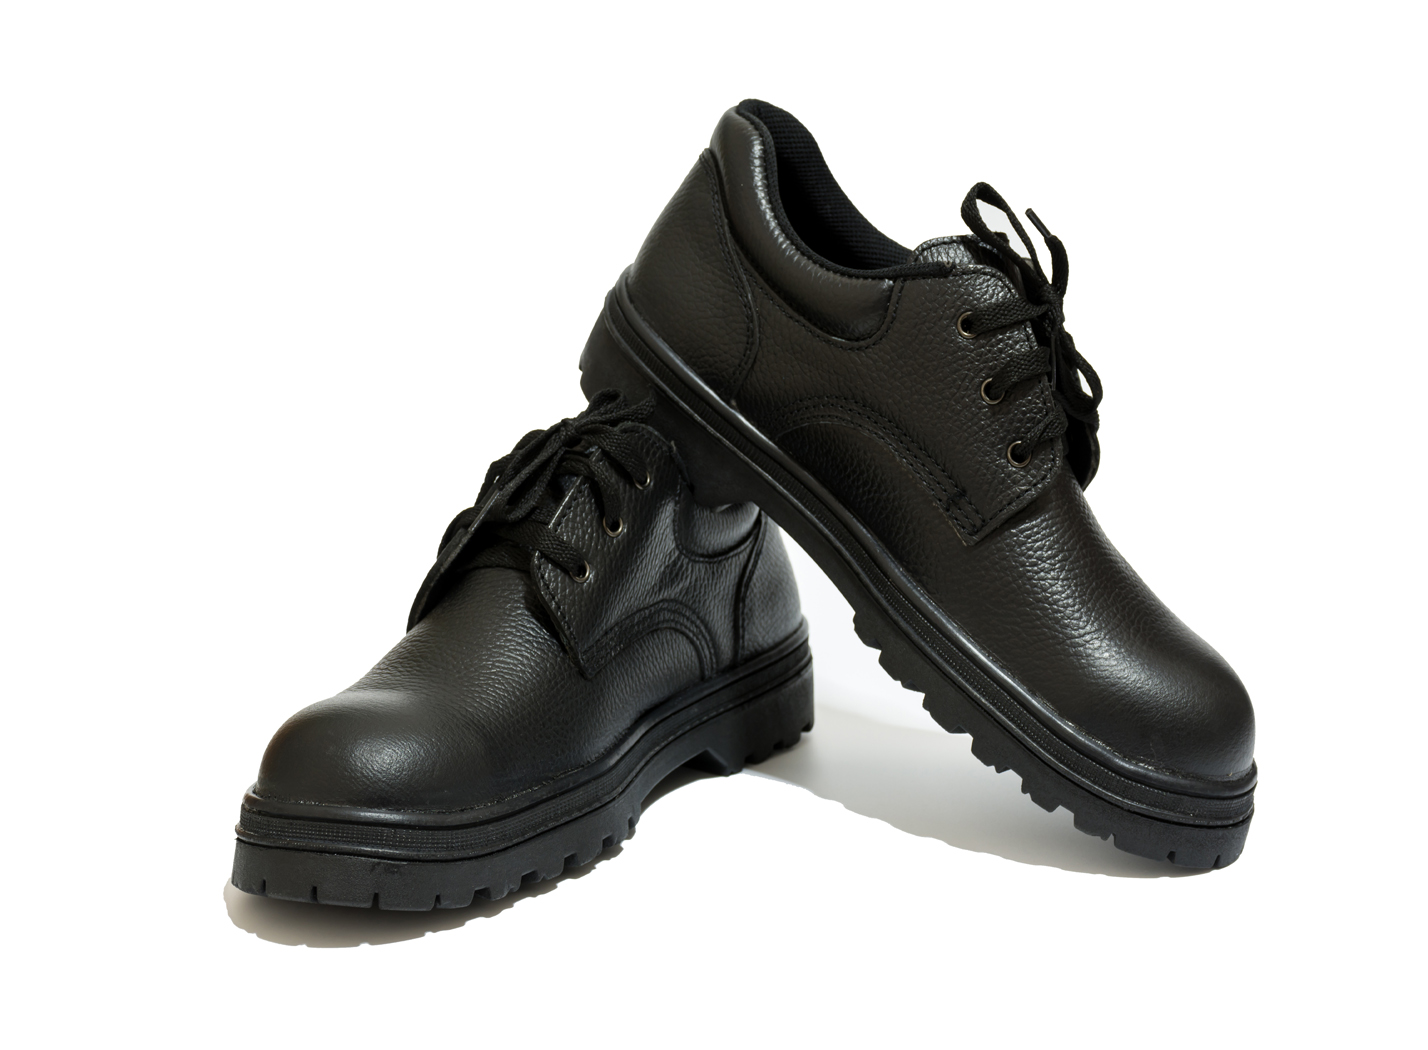 a780caefdaf 10 Best Safety Shoes Reviewed & Rated in 2019 | WalkJogRun